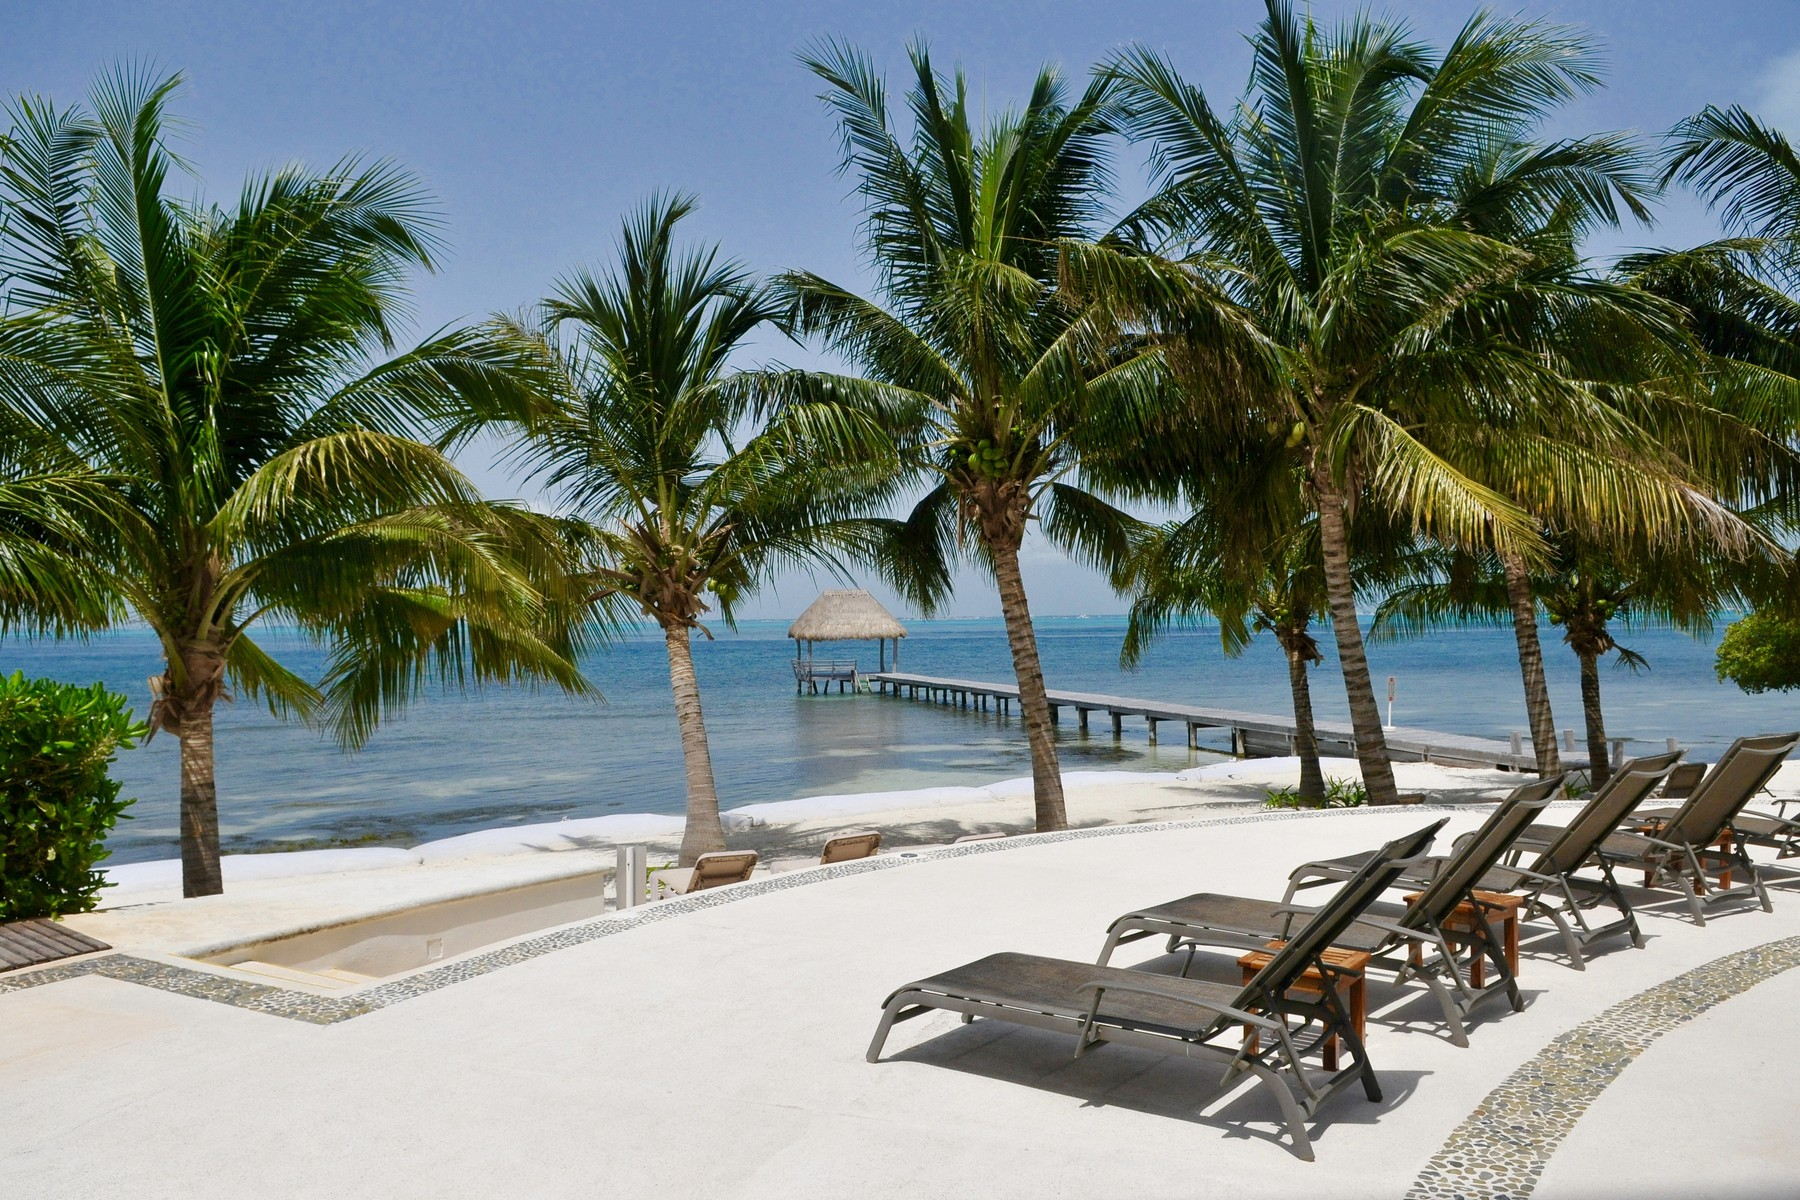 Single Family Home for Sale at CASA ELIZABETH: CARIBBEAN ISLAND LIVING Isla Mujeres, Mexico